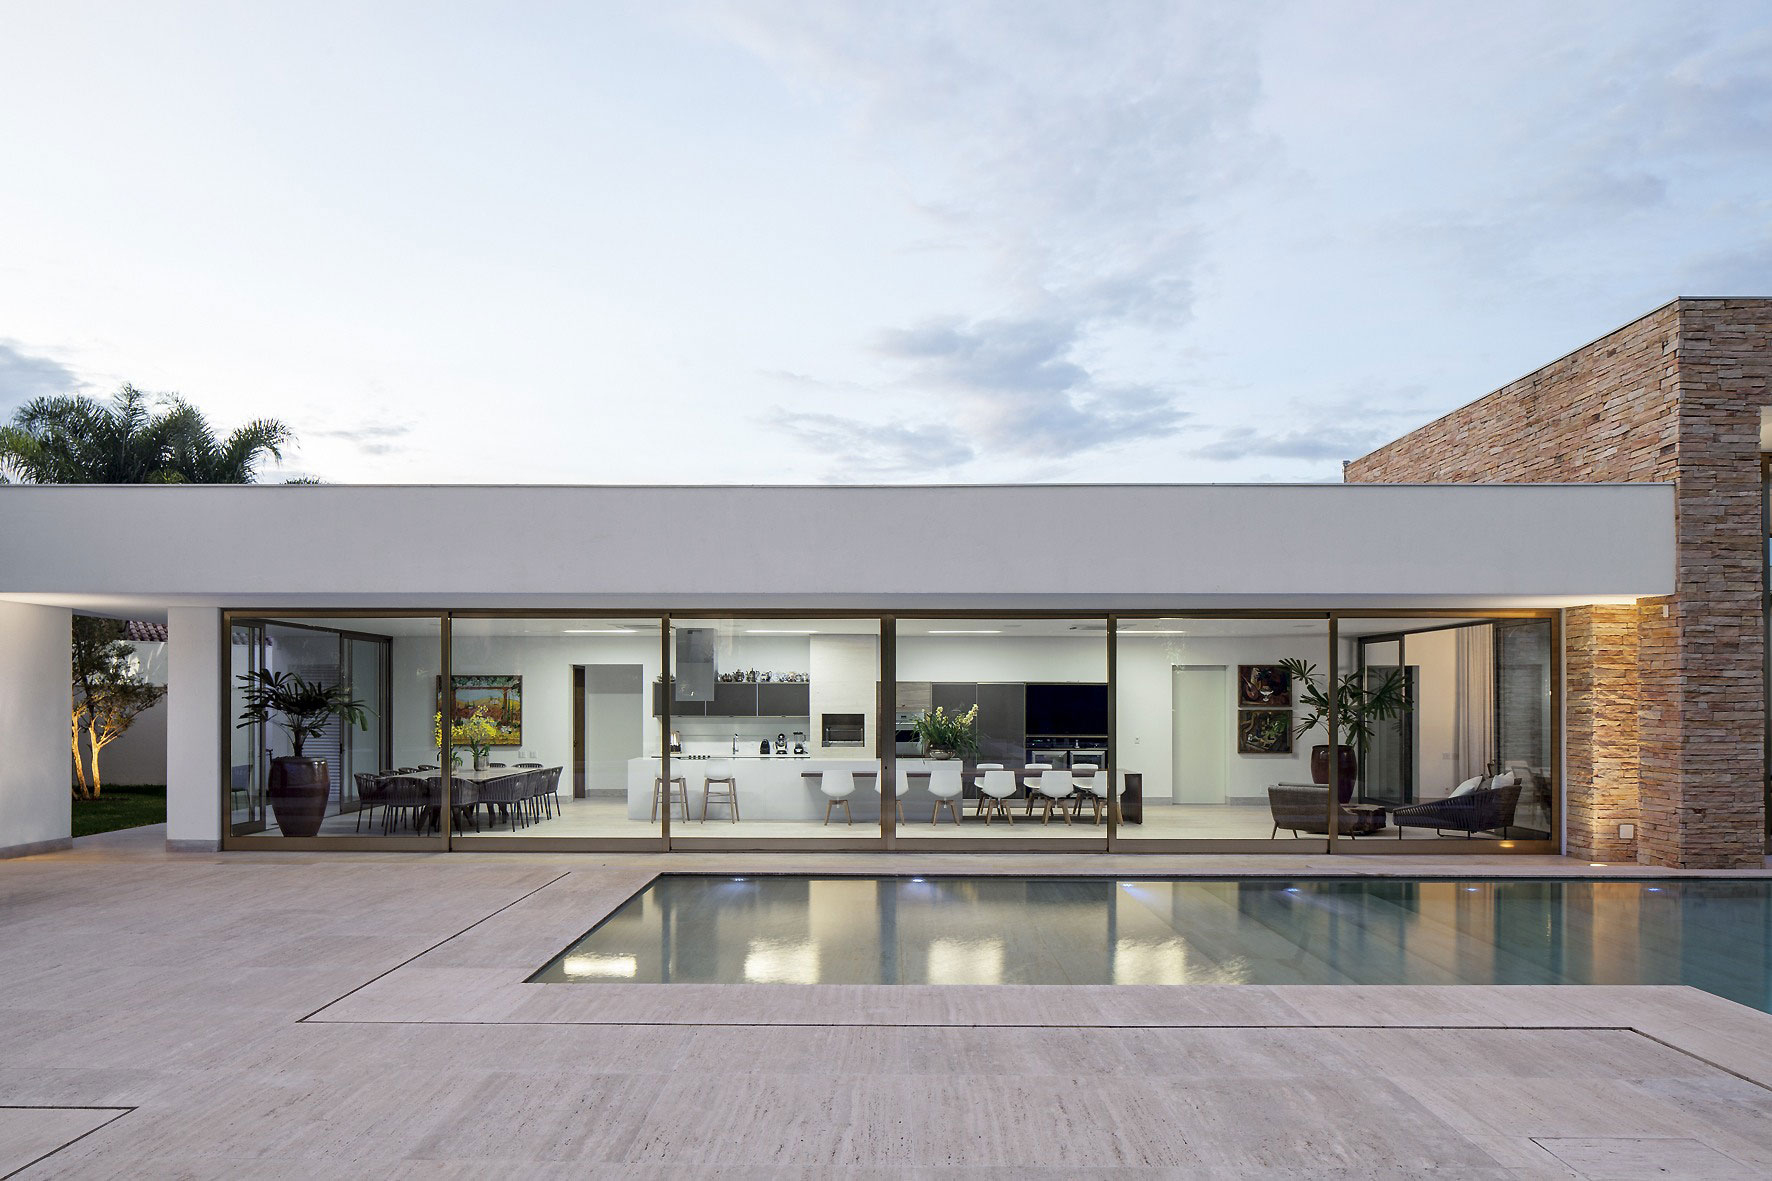 Terrace, Pool, Glass Sliding Doors, Home in Uberlandia, Brazil